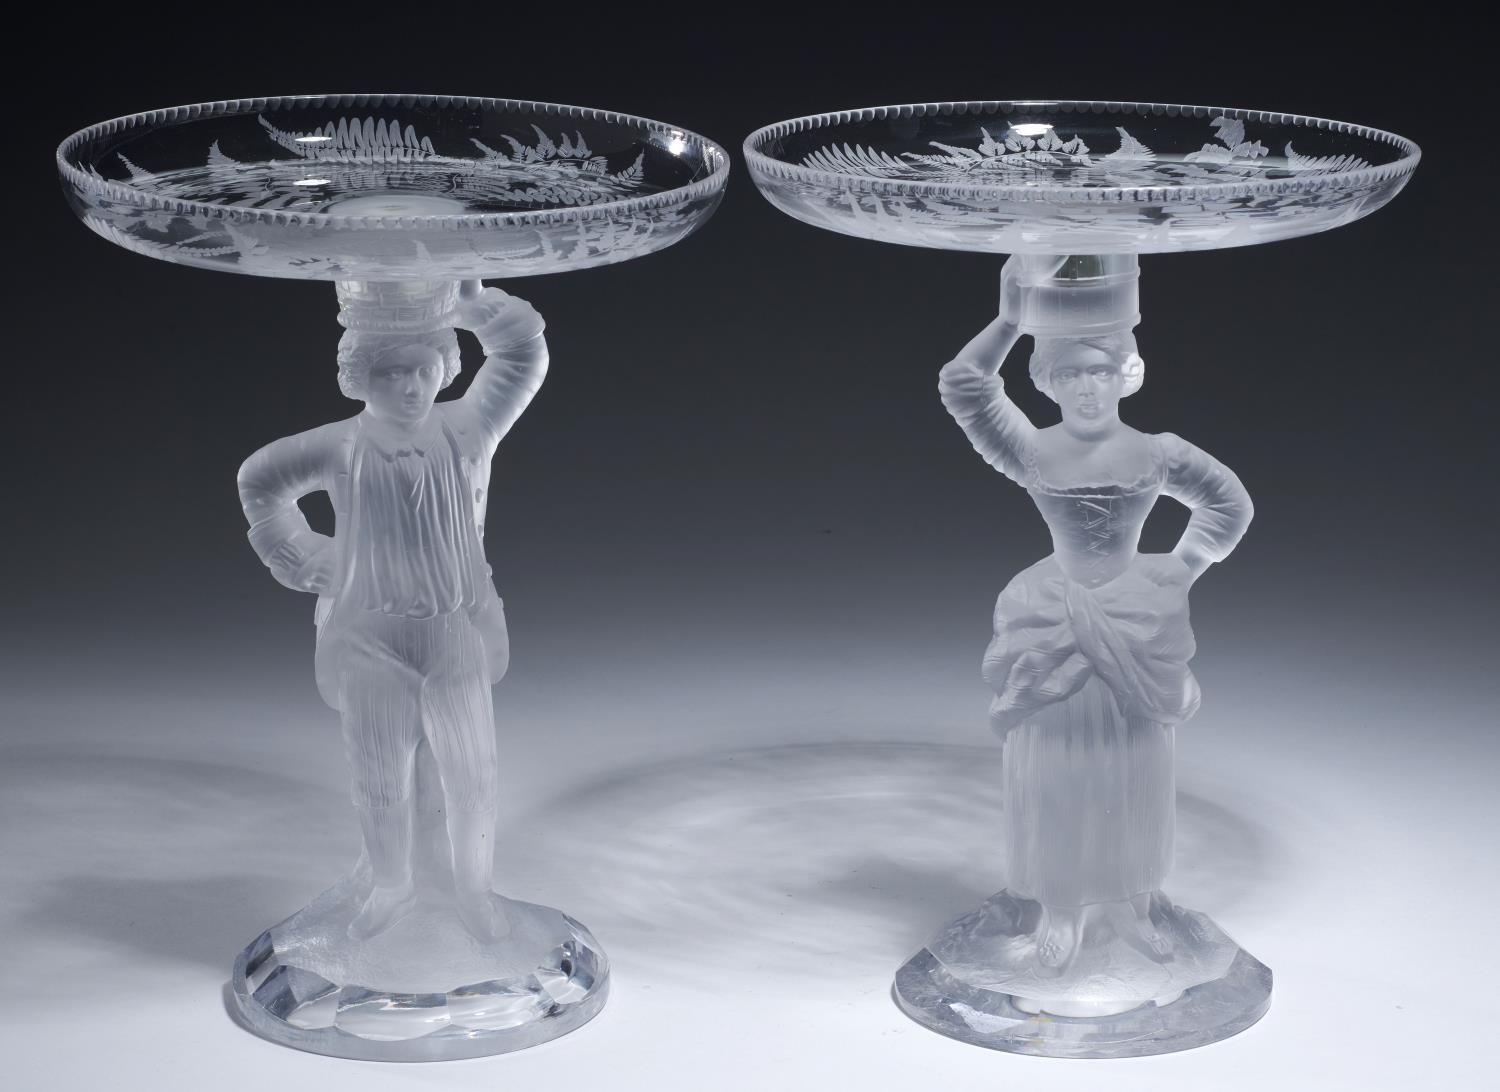 Lot 380 - A PAIR OF JOHN FORD OF EDINBURGH MAN AND WOMAN FIGURAL MOULDED GLASS STANDS OR CANDLESTICKS AND PAIR